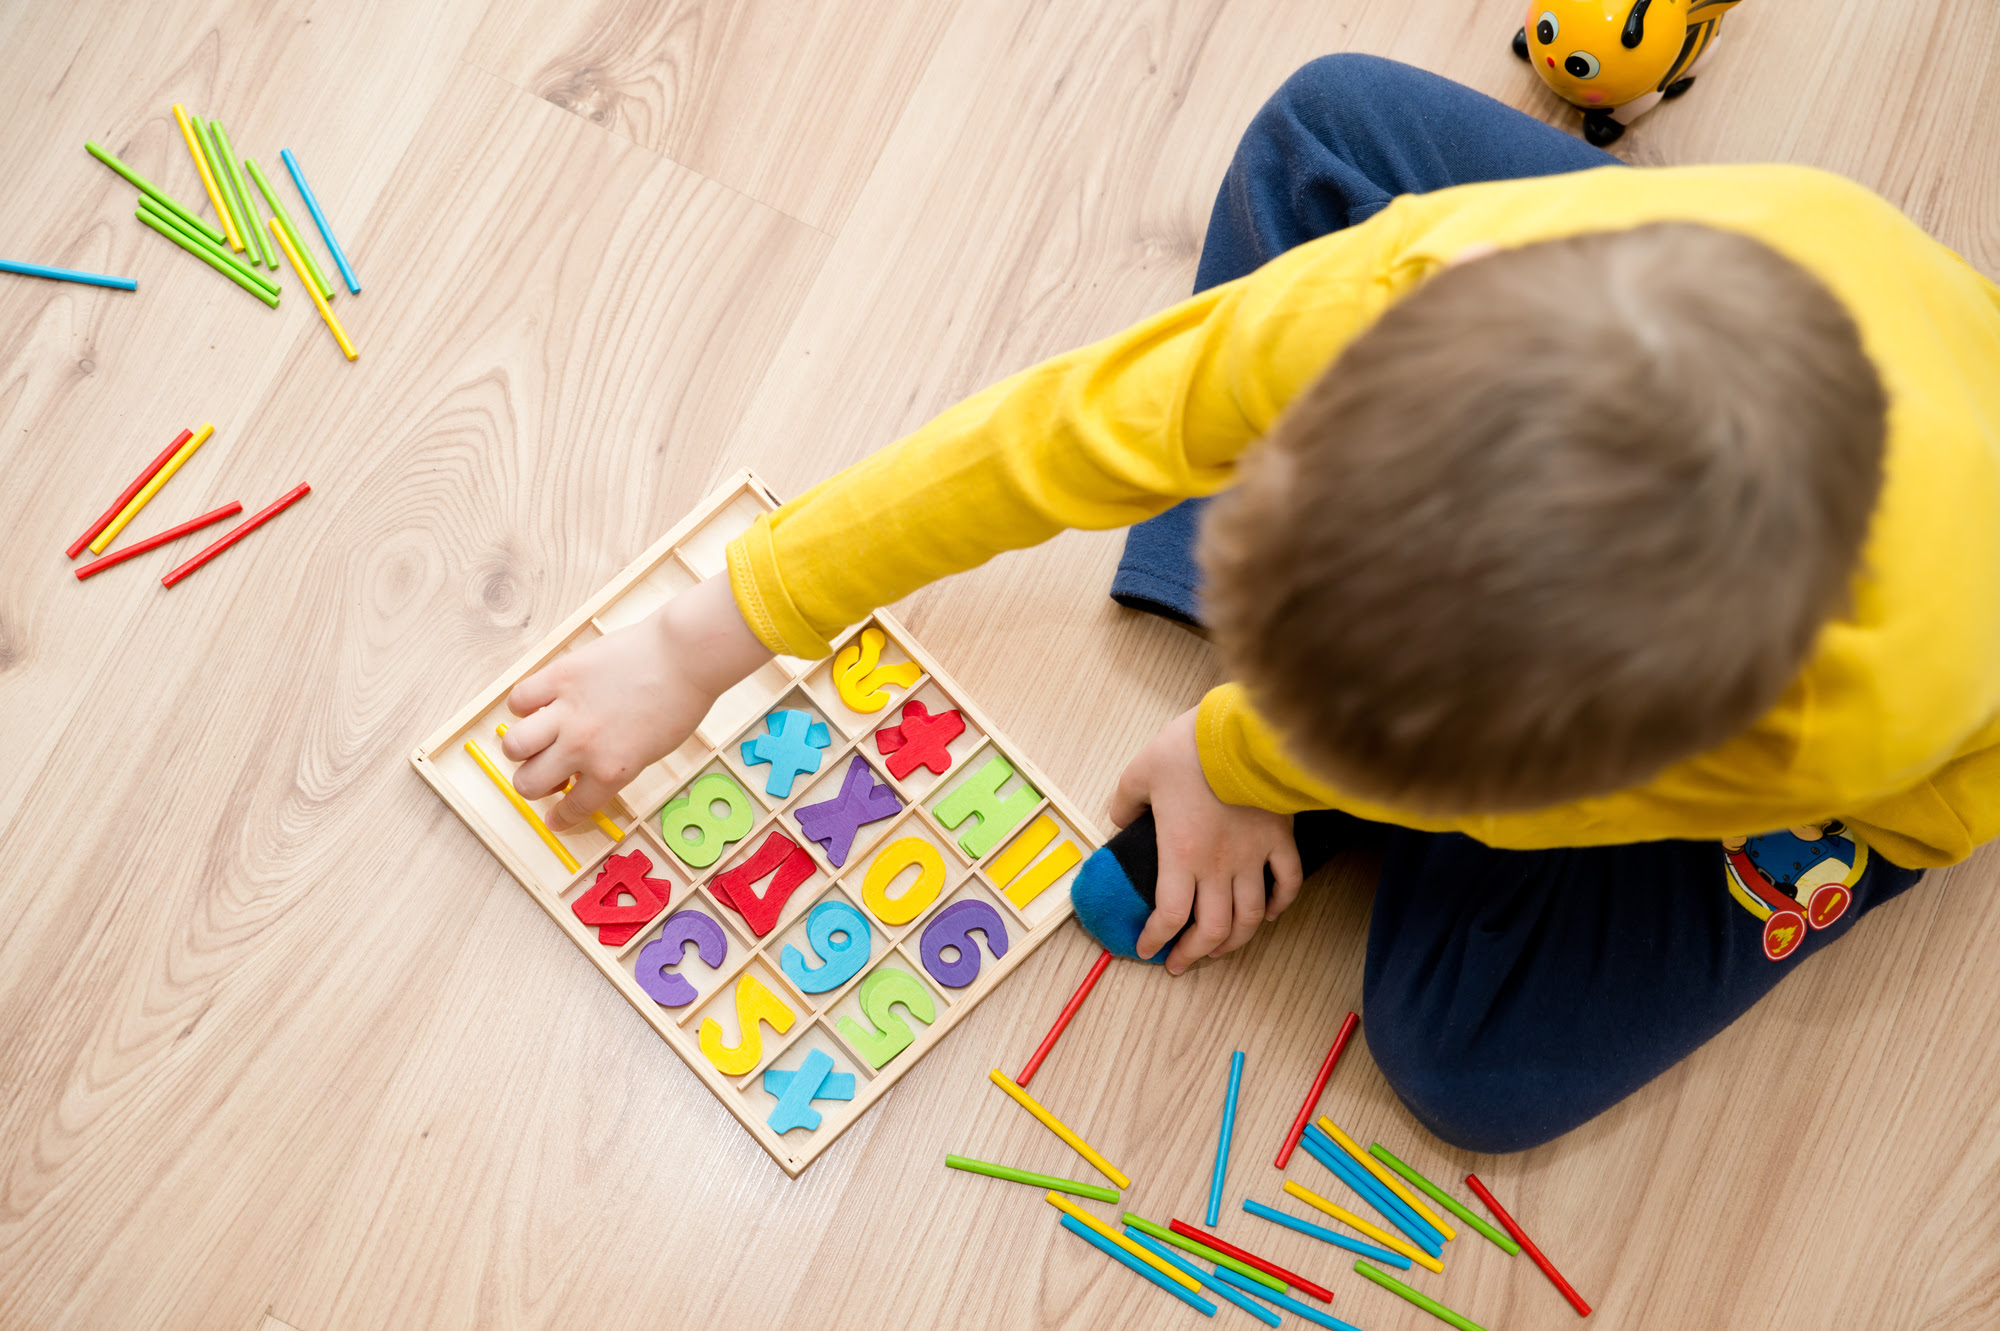 A little boy playing with a colorful counting number set on the floor.